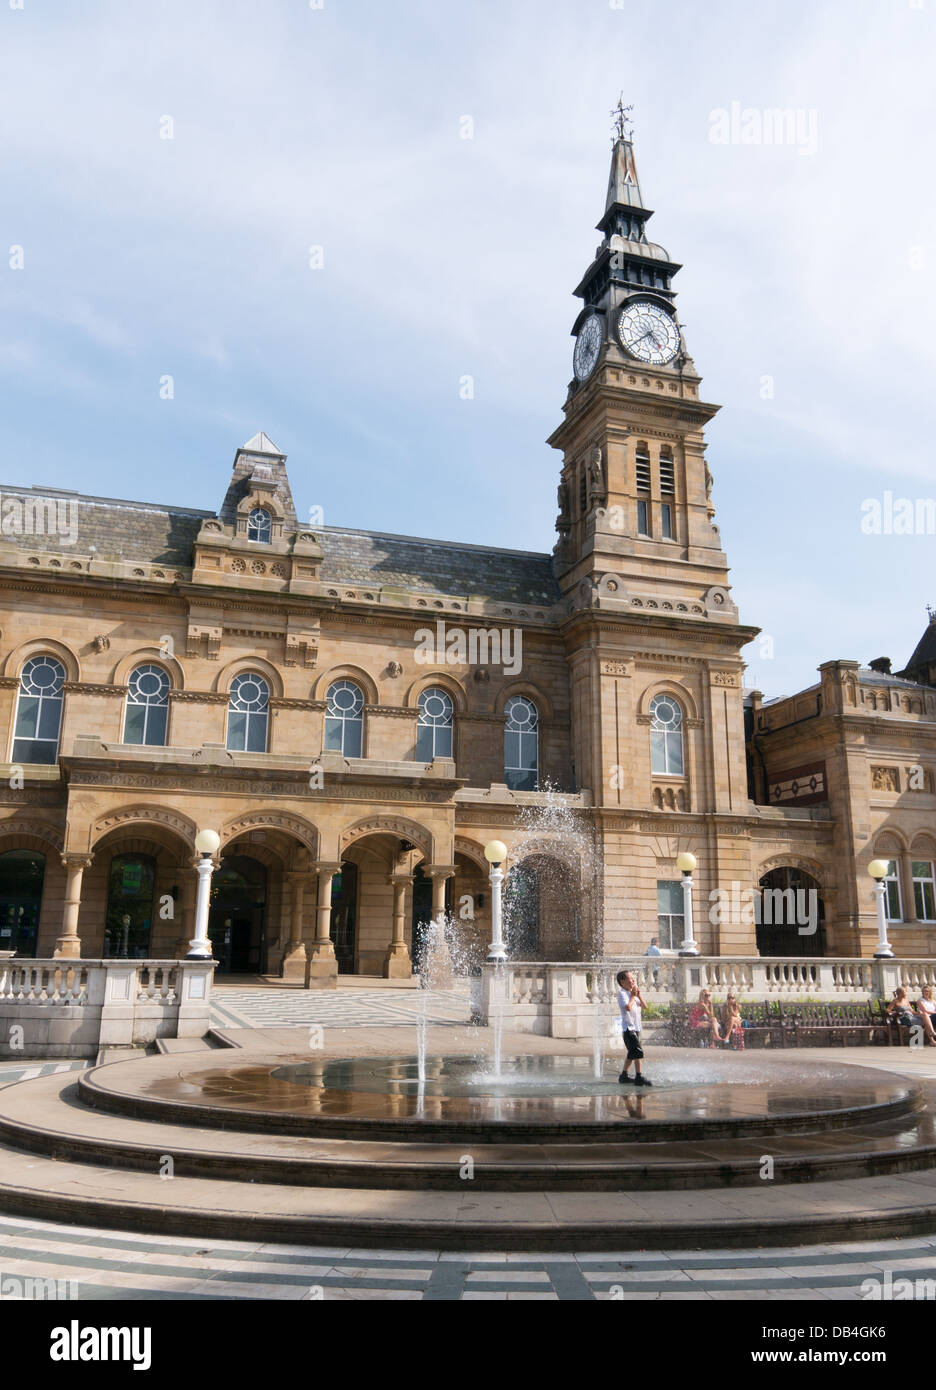 Young boy cools off in fountain in front of Southport town hall during summer heatwave, north west England, UK - Stock Image